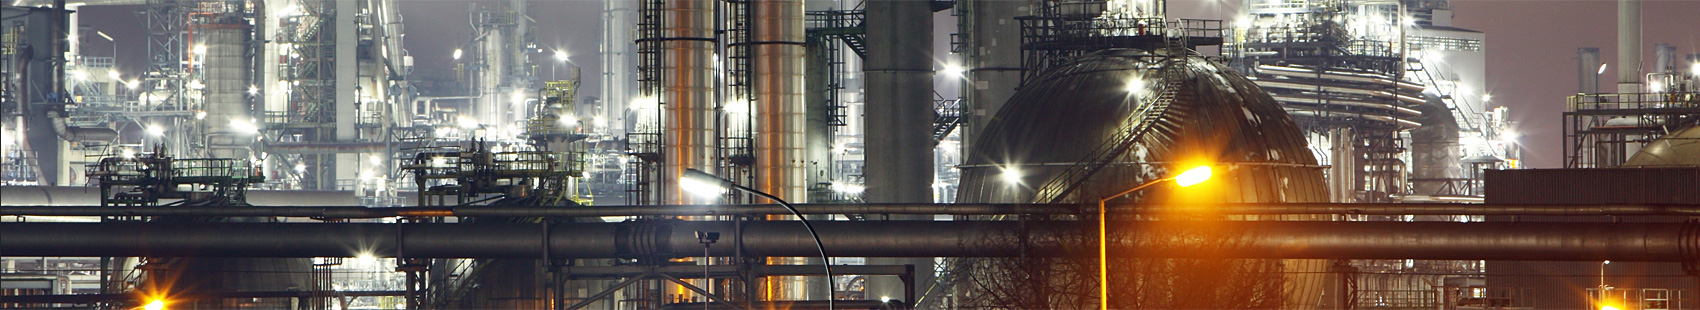 Chemical/Petrochemical Production and Feedstock Conversion in China